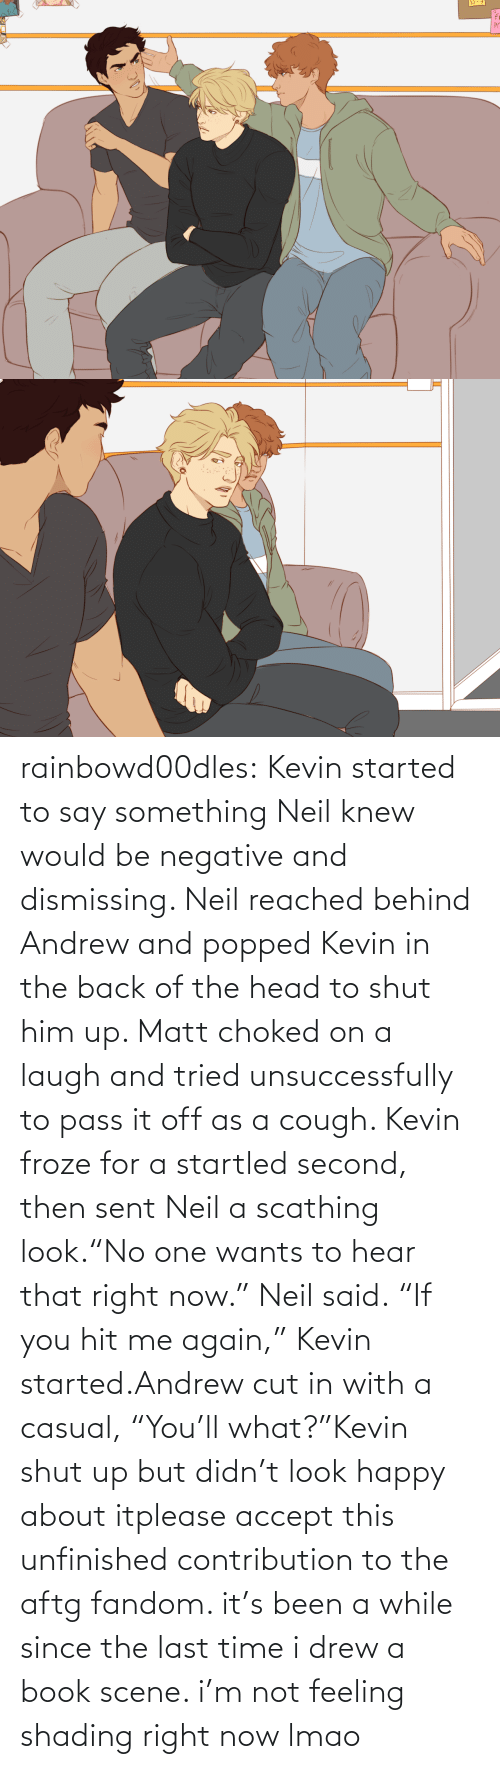 "cough: rainbowd00dles:  Kevin started to say something Neil knew would be negative and dismissing. Neil reached behind Andrew and popped Kevin in the back of the head to shut him up. Matt choked on a laugh and tried unsuccessfully to pass it off as a cough. Kevin froze for a startled second, then sent Neil a scathing look.""No one wants to hear that right now."" Neil said. ""If you hit me again,"" Kevin started.Andrew cut in with a casual, ""You'll what?""Kevin shut up but didn't look happy about itplease accept this unfinished contribution to the aftg fandom. it's been a while since the last time i drew a book scene. i'm not feeling shading right now lmao"